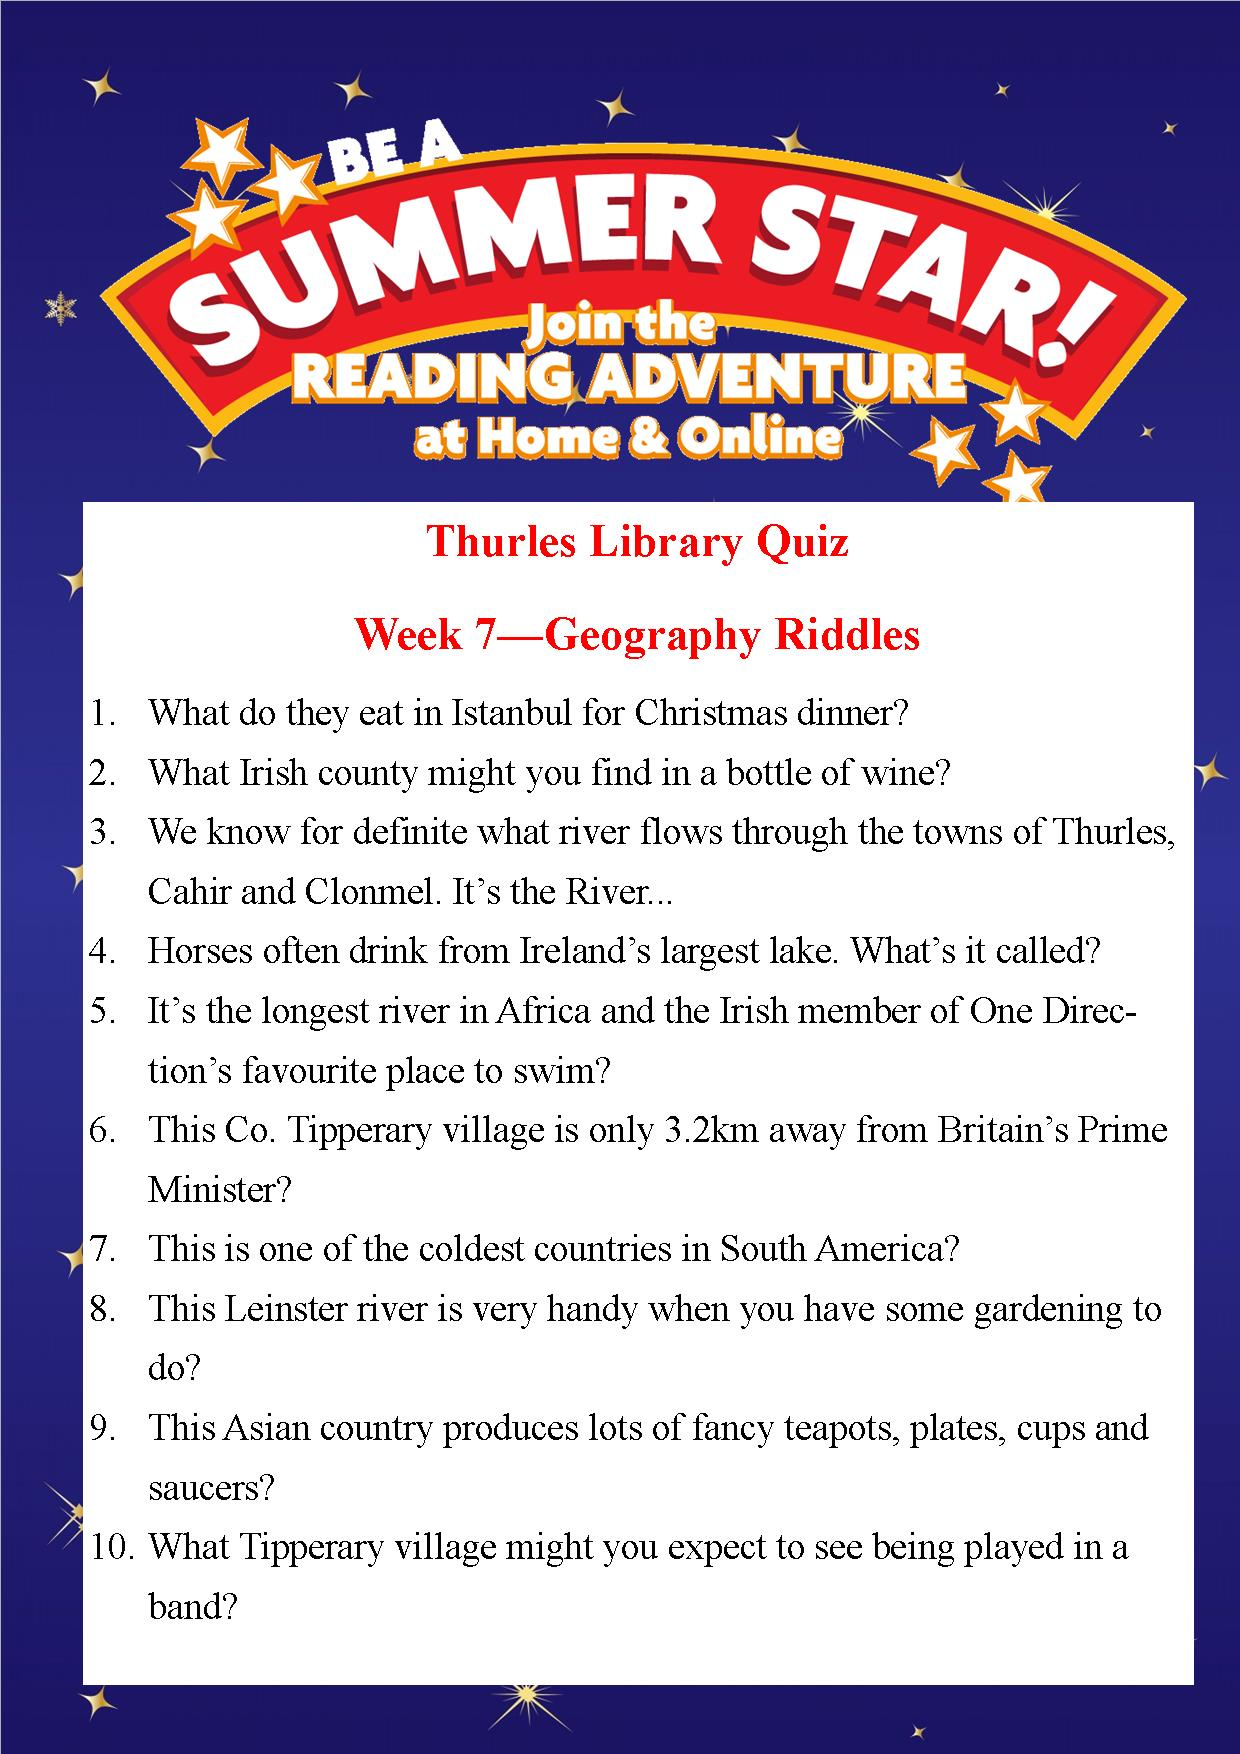 Thurles Library's Summer Stars Quiz – Week 7